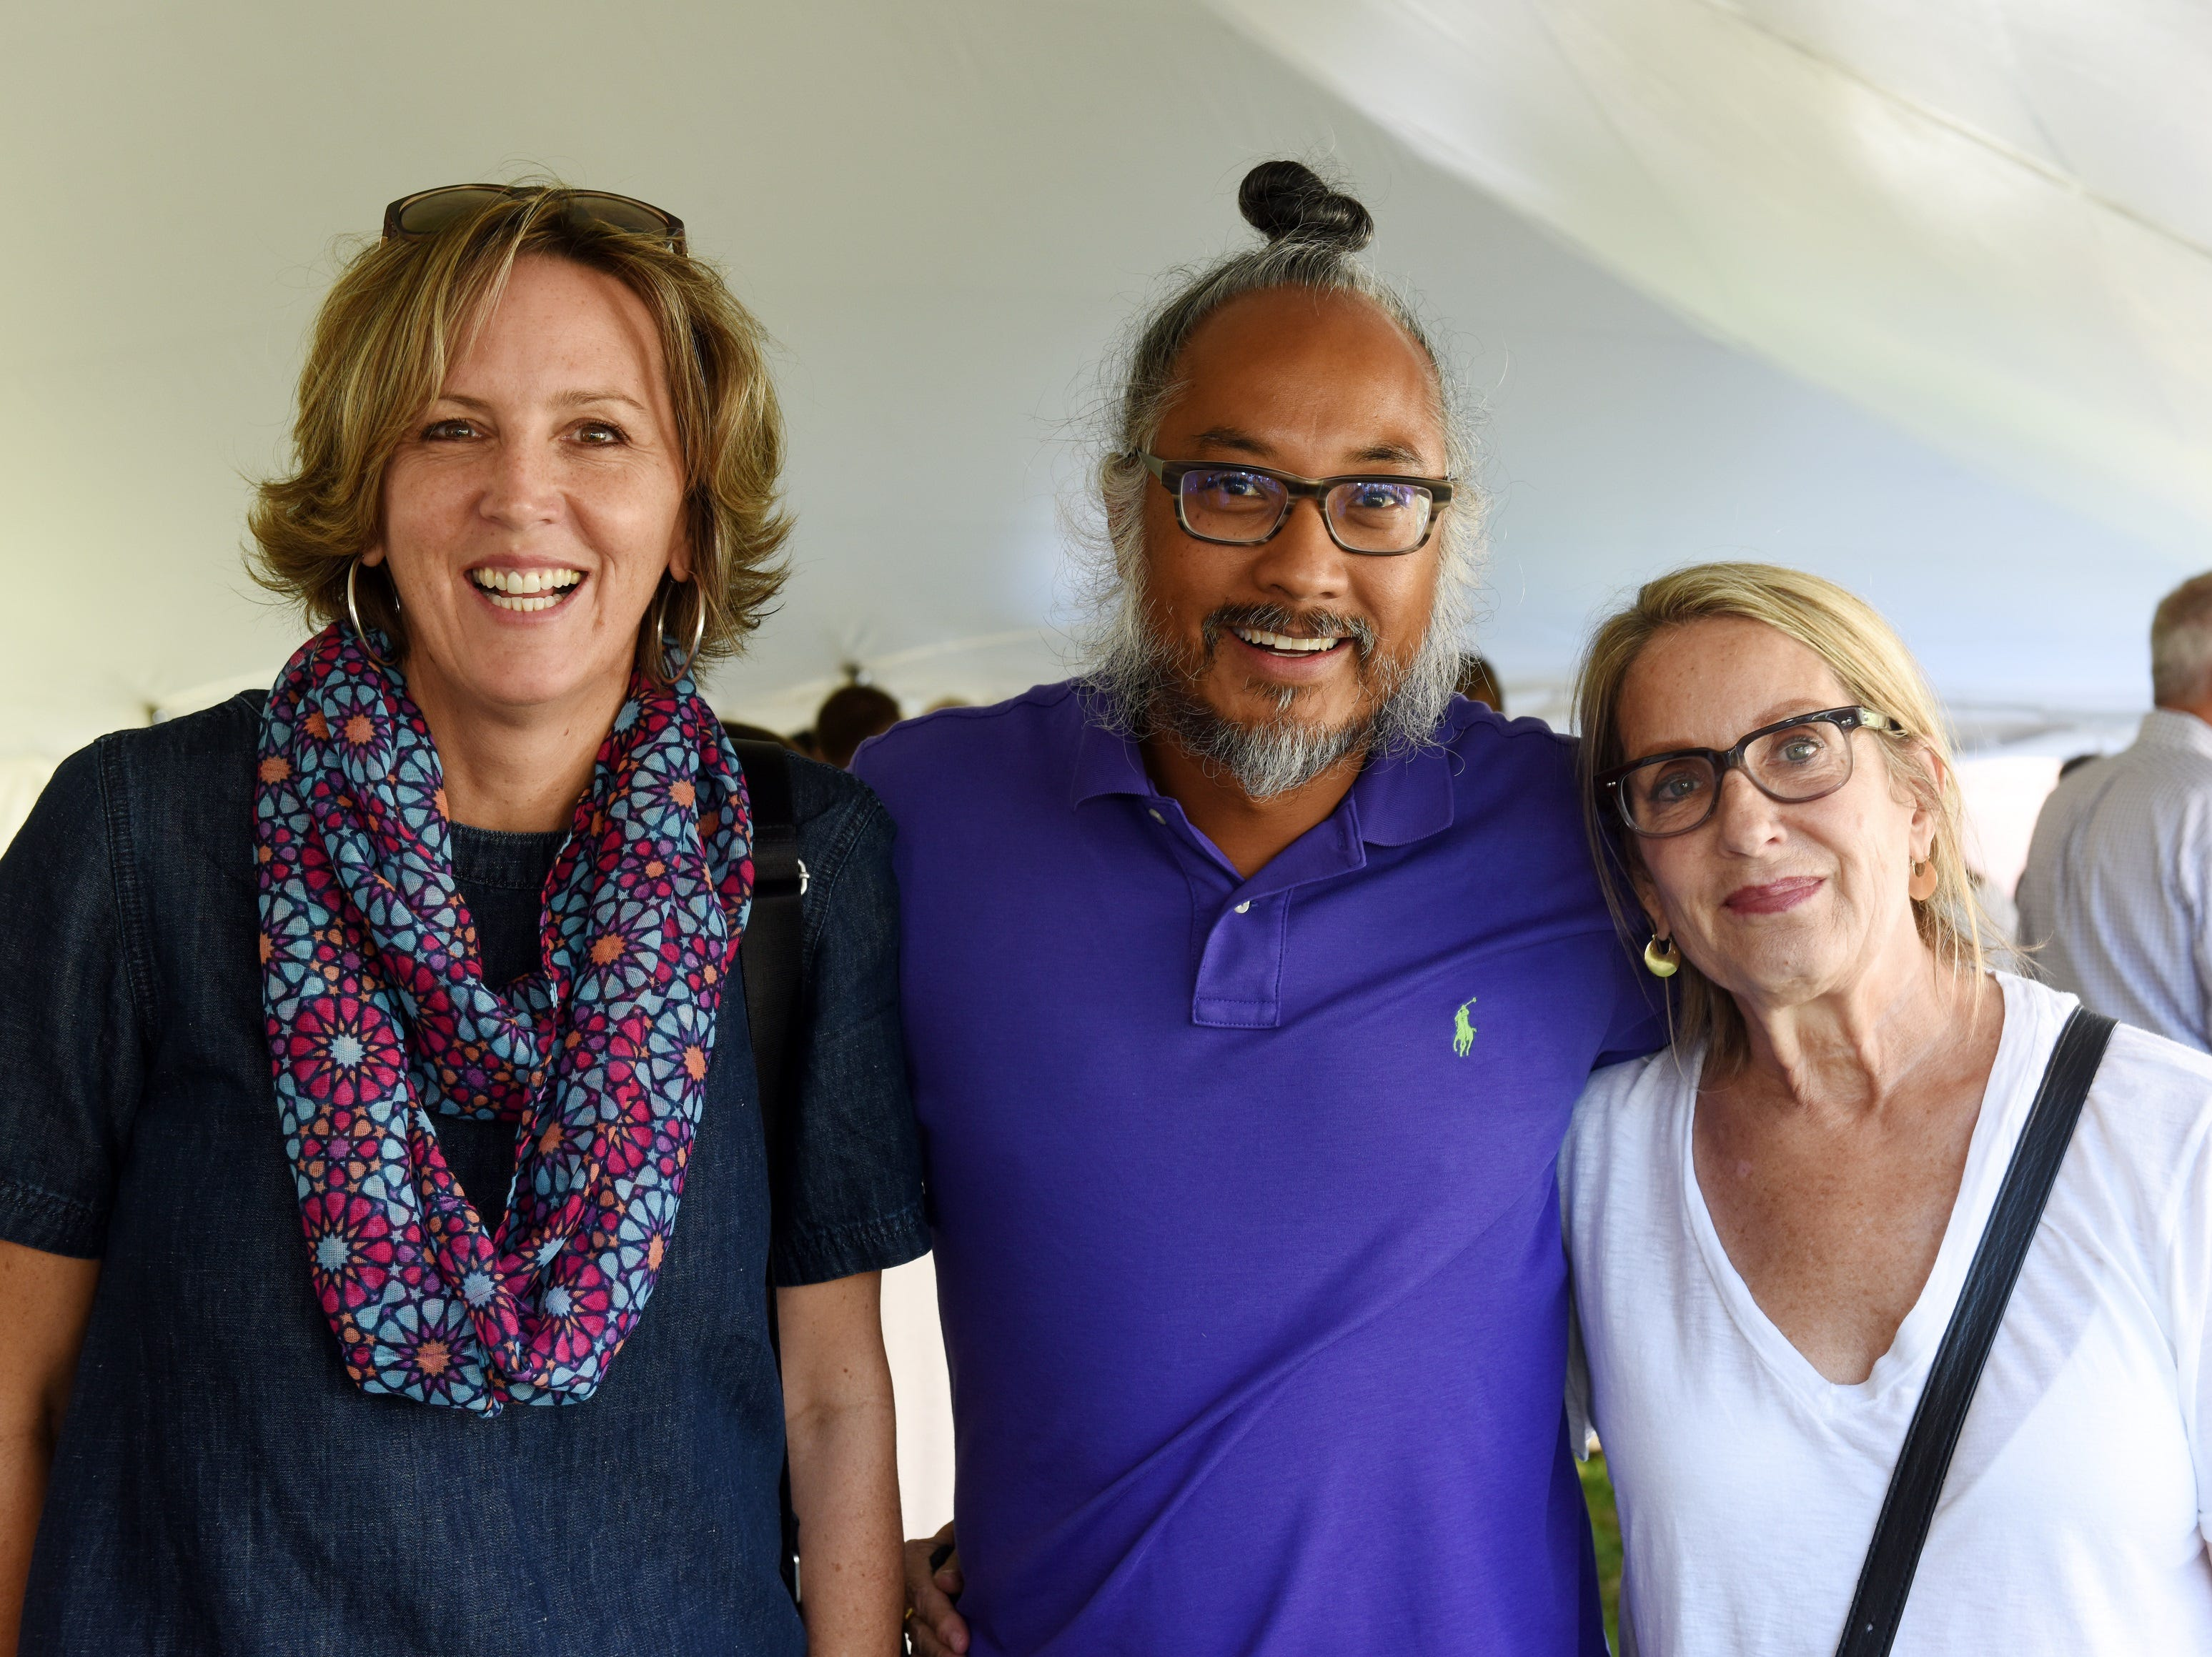 """Julie Thorpe and Ranjit """"Buddy"""" Singh of Spruce Mortgage, with Karen Waters of CBHB attend the Coldwell Banker Hickok & Boardman 60th Anniversary on September 13, 2018, with current and past agents and community leaders in Burlington, VT."""